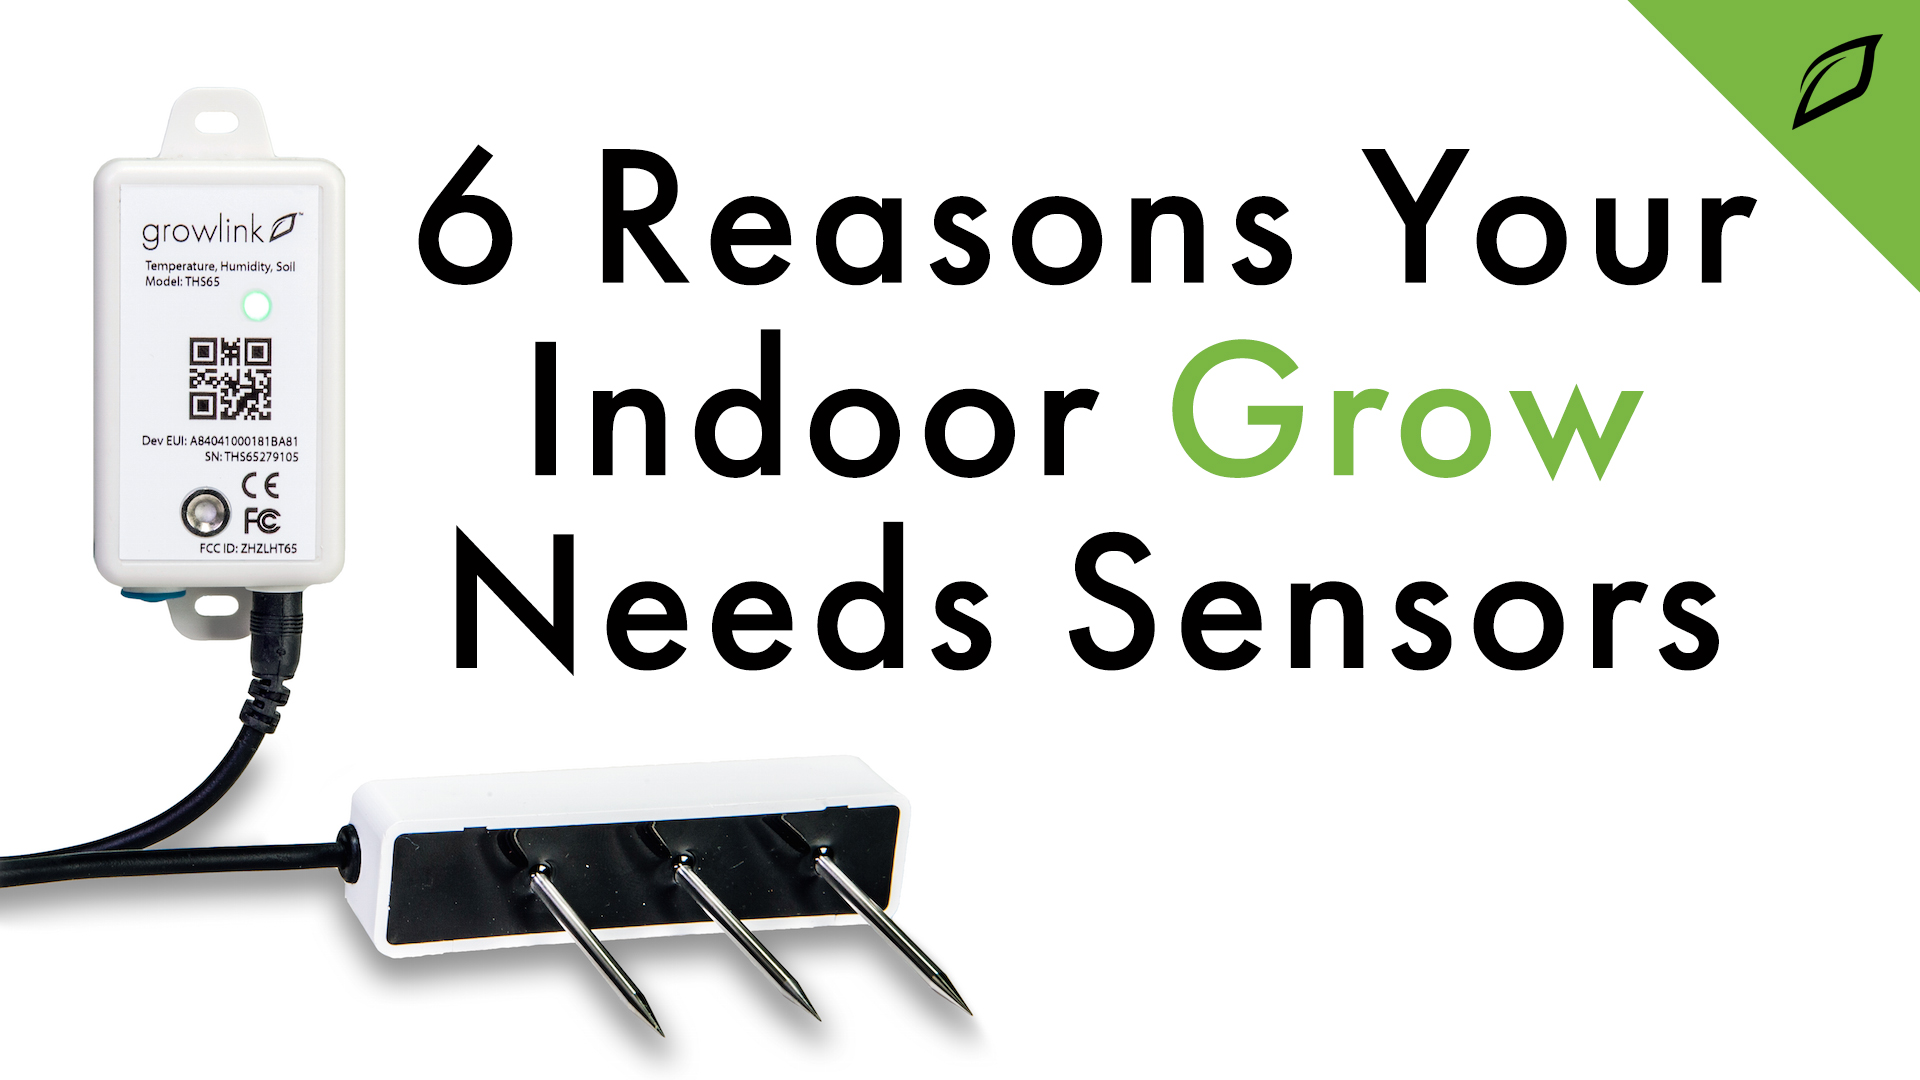 6 Reasons Sensor Blog 16x9-2